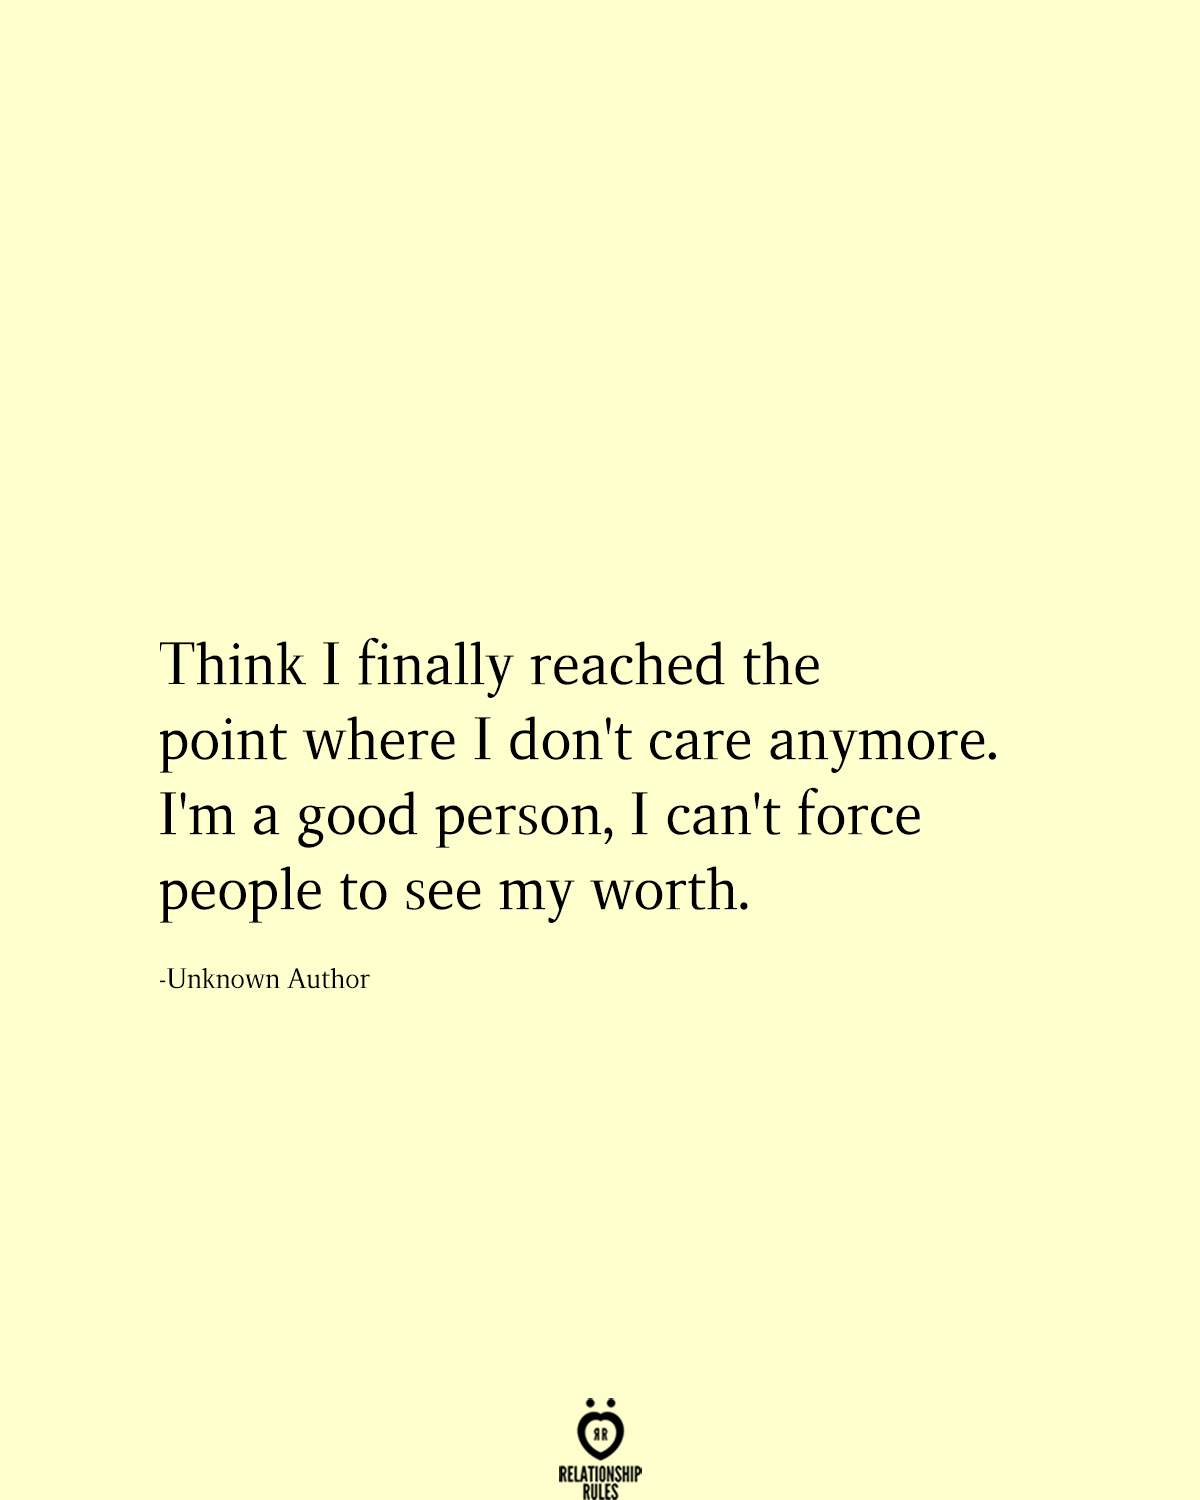 Think I finally reached the point where I don't care anymore. I'm a good person, I can't force people to see my worth.  -Unknown Author